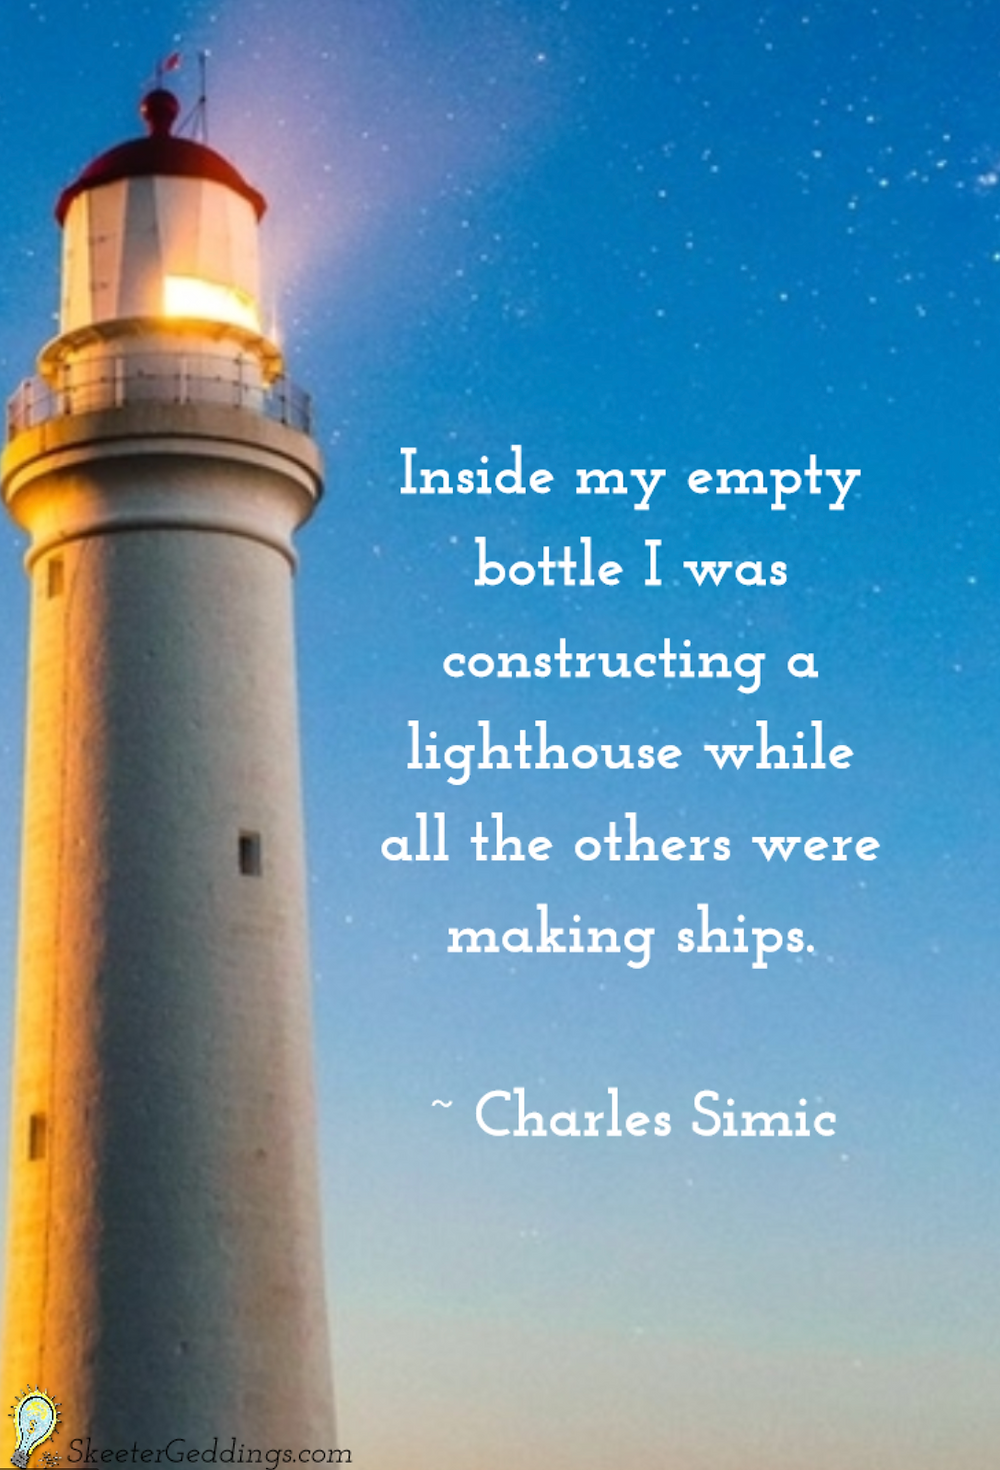 Inside my empty bottle I was constructing a lighthouse while all the others were making ships -Charles Simic quote image